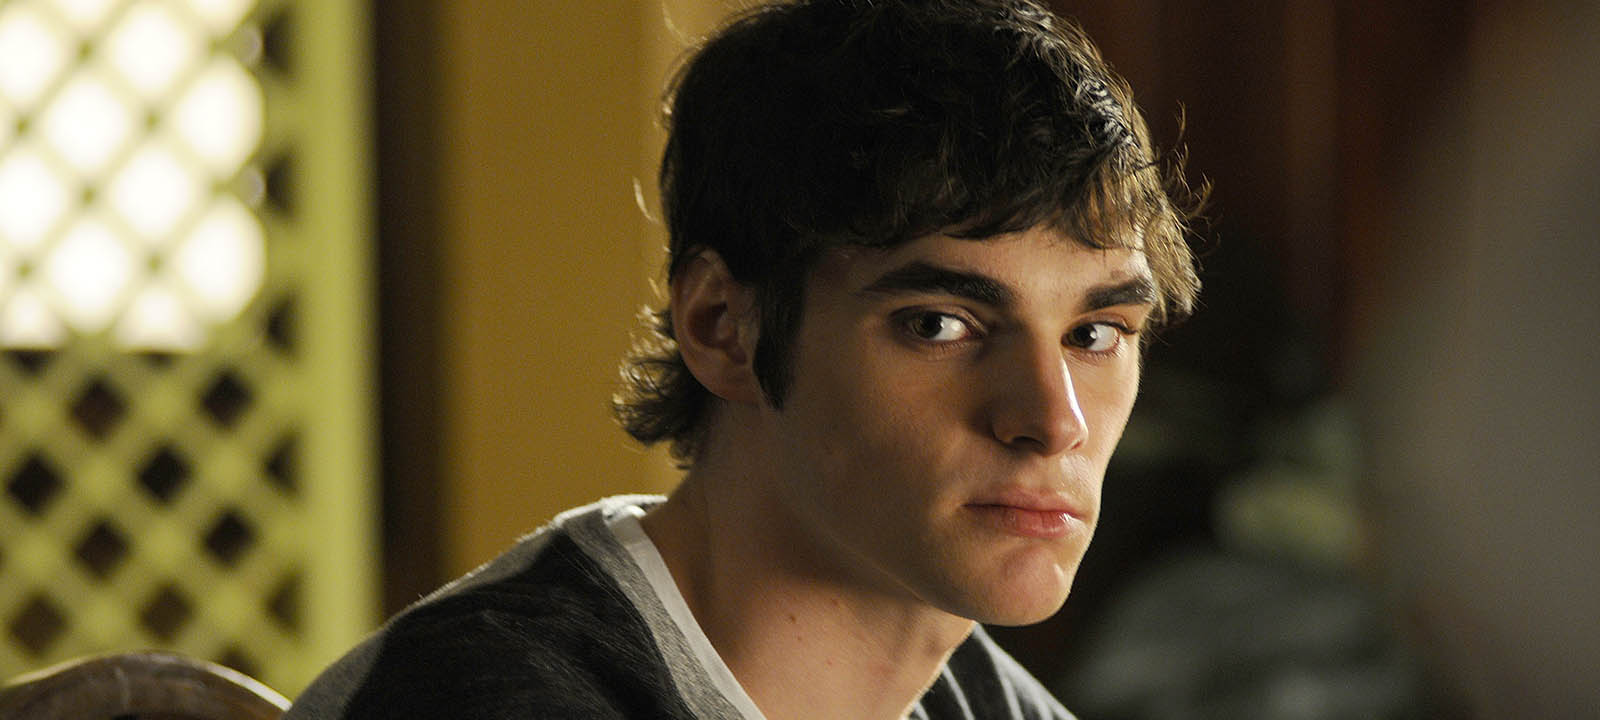 BB_406_QA_RJMitte